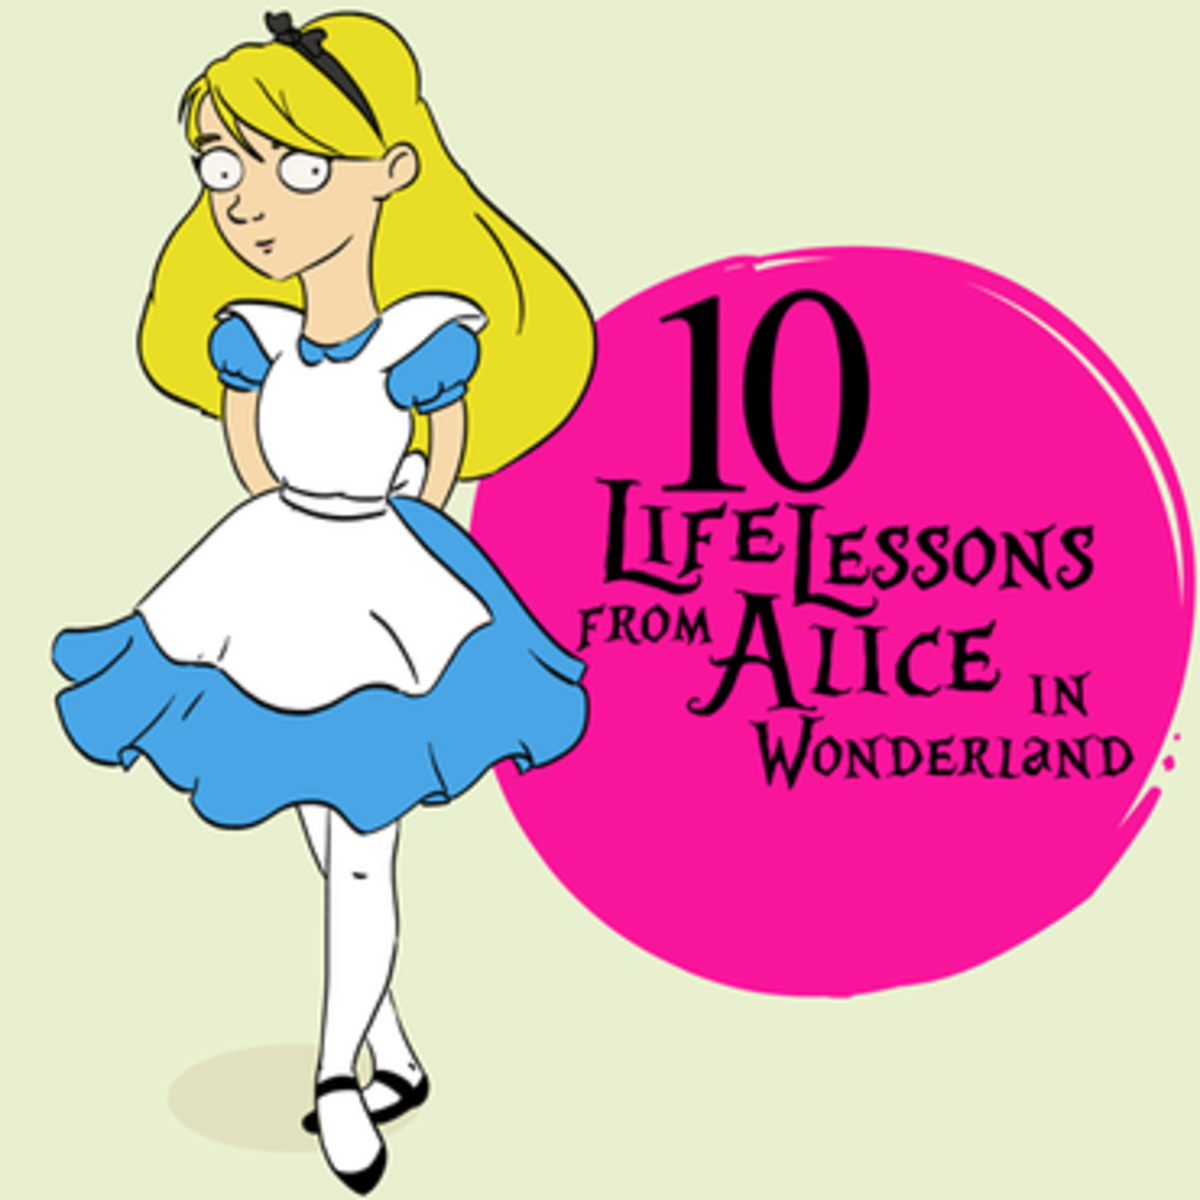 10 Life Lessons From Alice in Wonderland | Owlcation